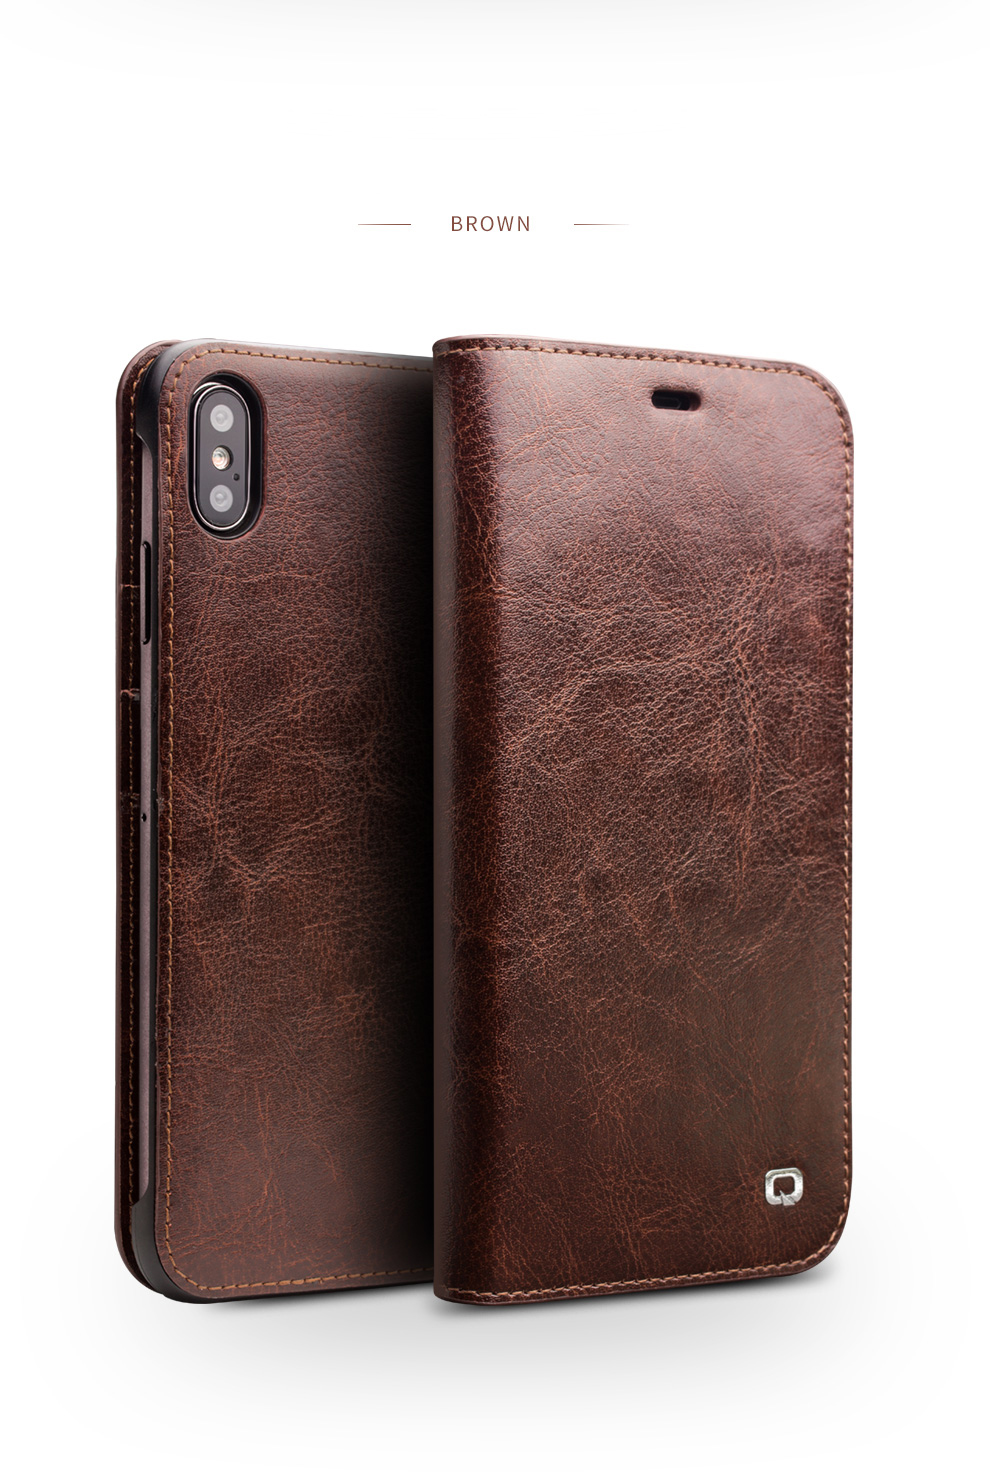 9b2d760ee2a Details about QIALINO Genuine Cowhide Leather Wallet Case Cover for iPhone  Xs Max 6.5 inch